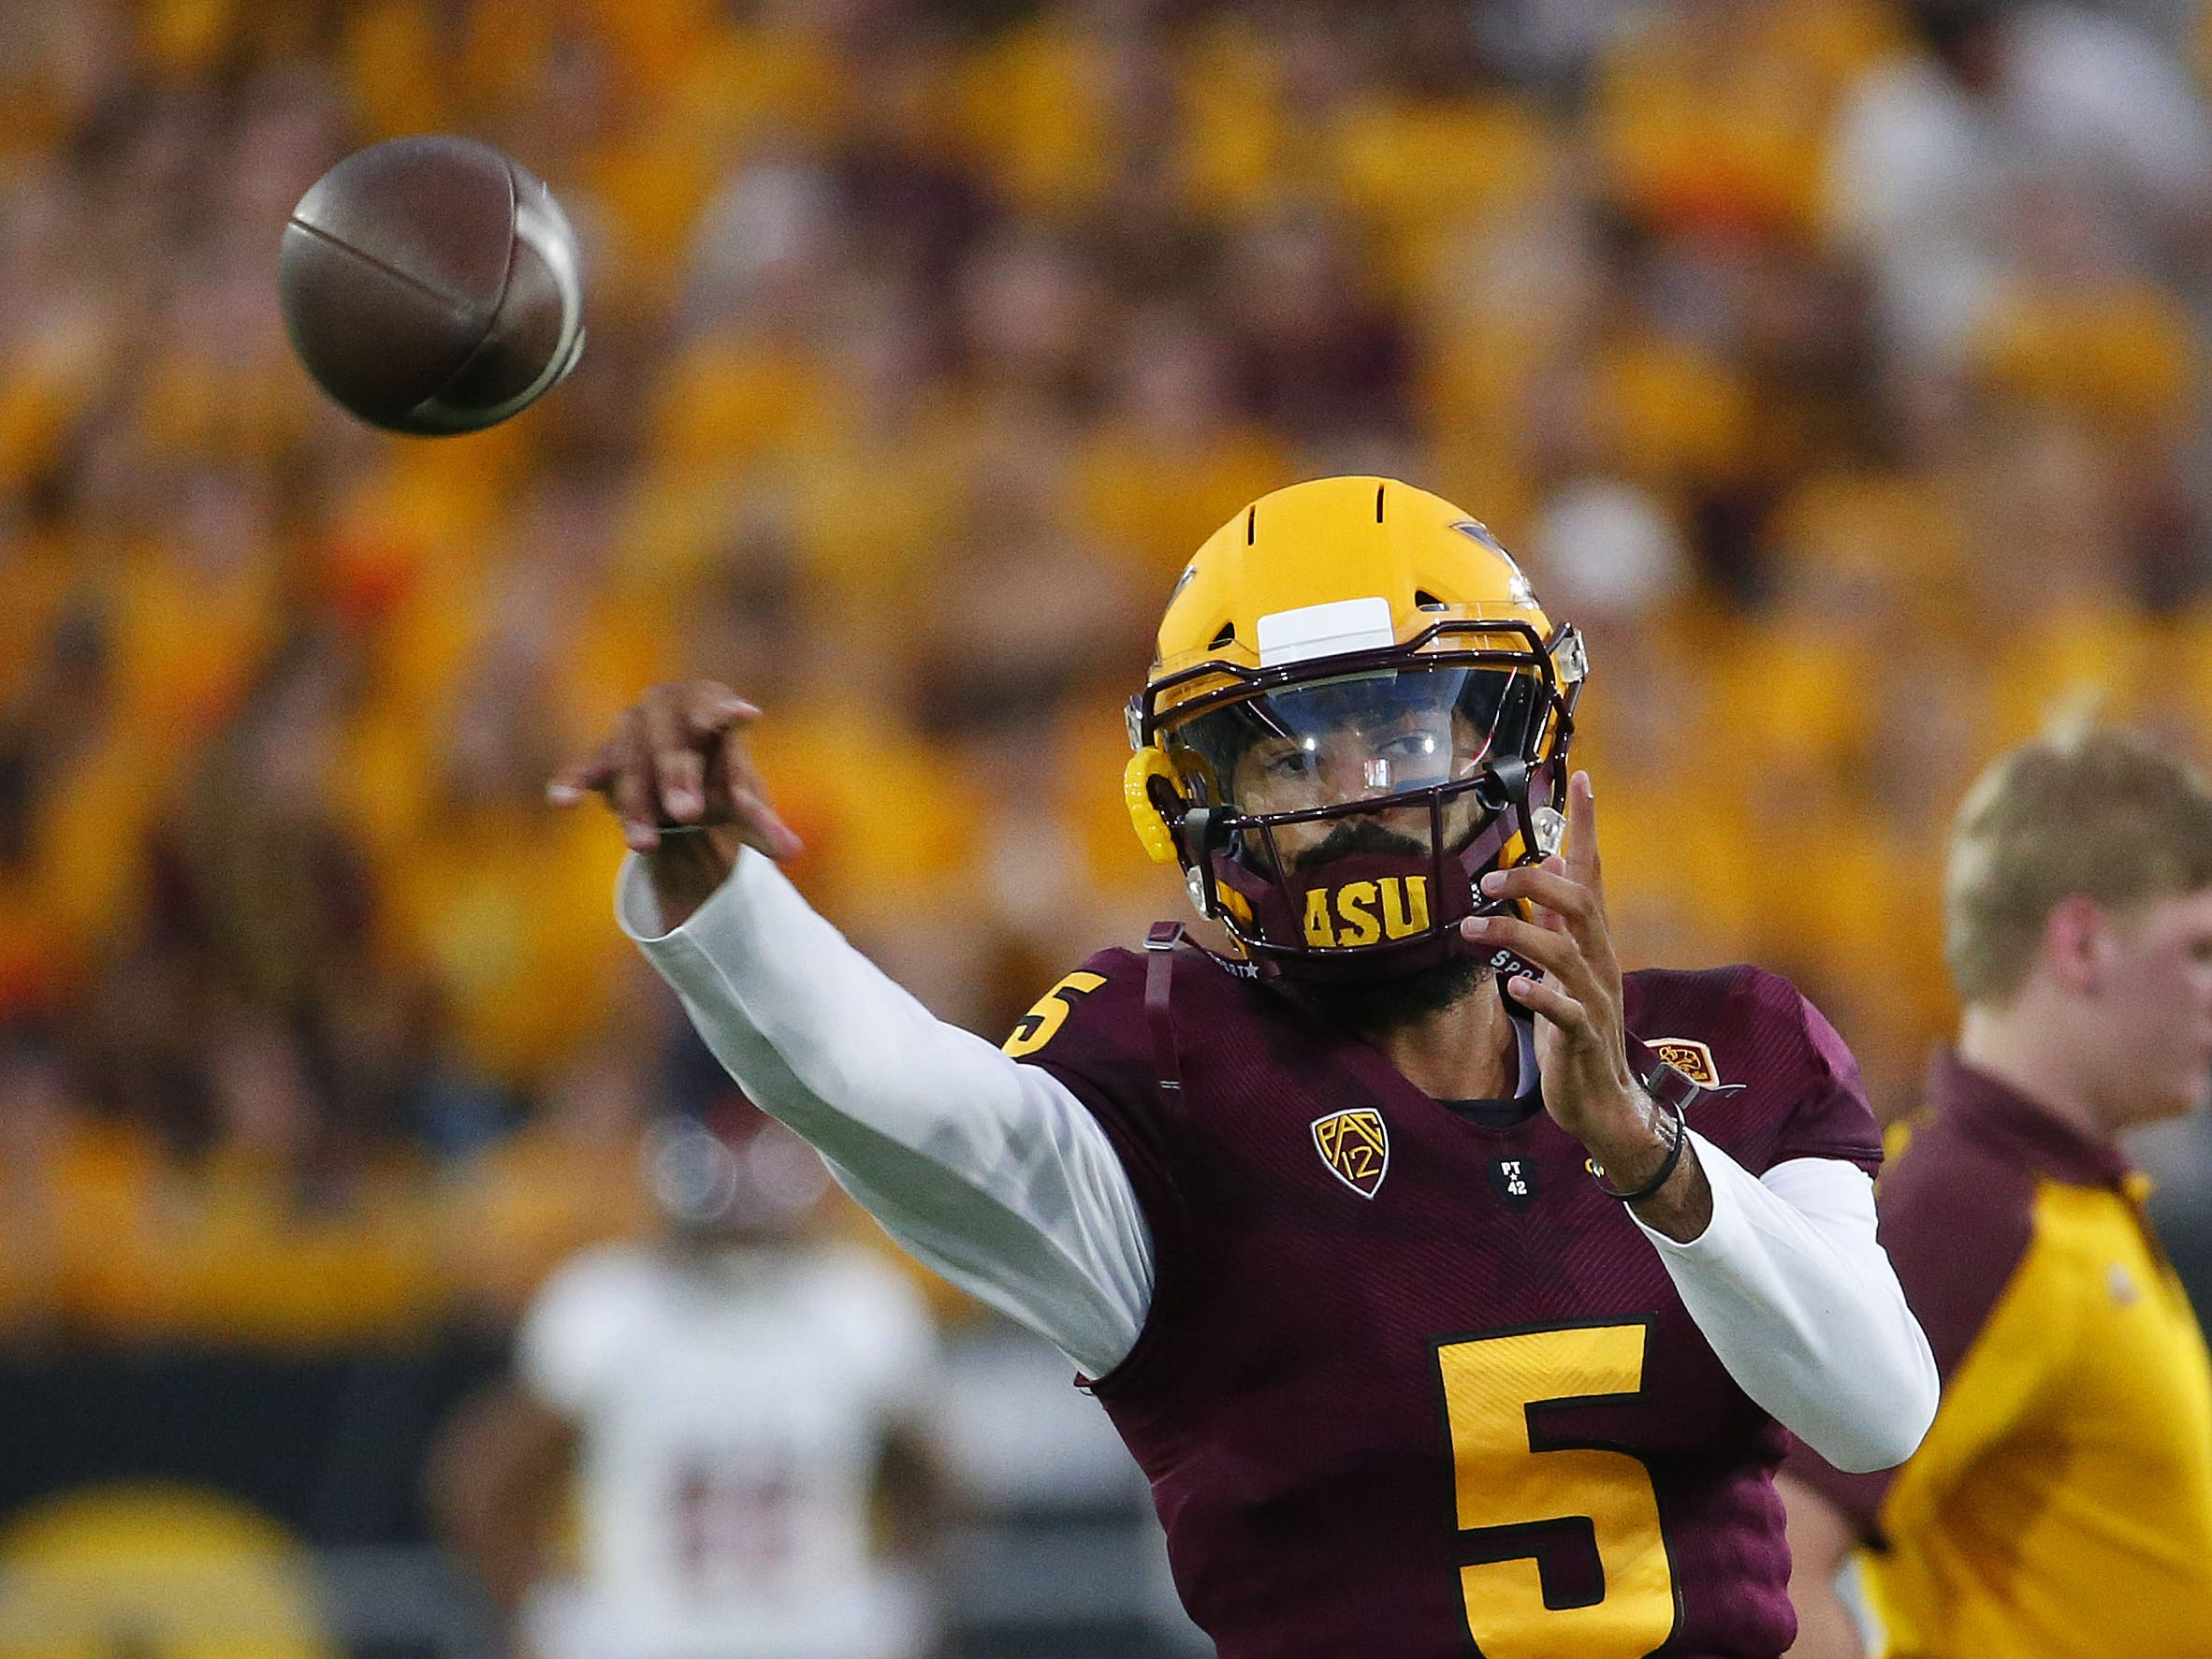 Arizona State Sun Devils quarterback Manny Wilkins (5) warms up before a football game against the UTSA Roadrunners at Sun Devil Stadium in Tempe on September 1, 2018.